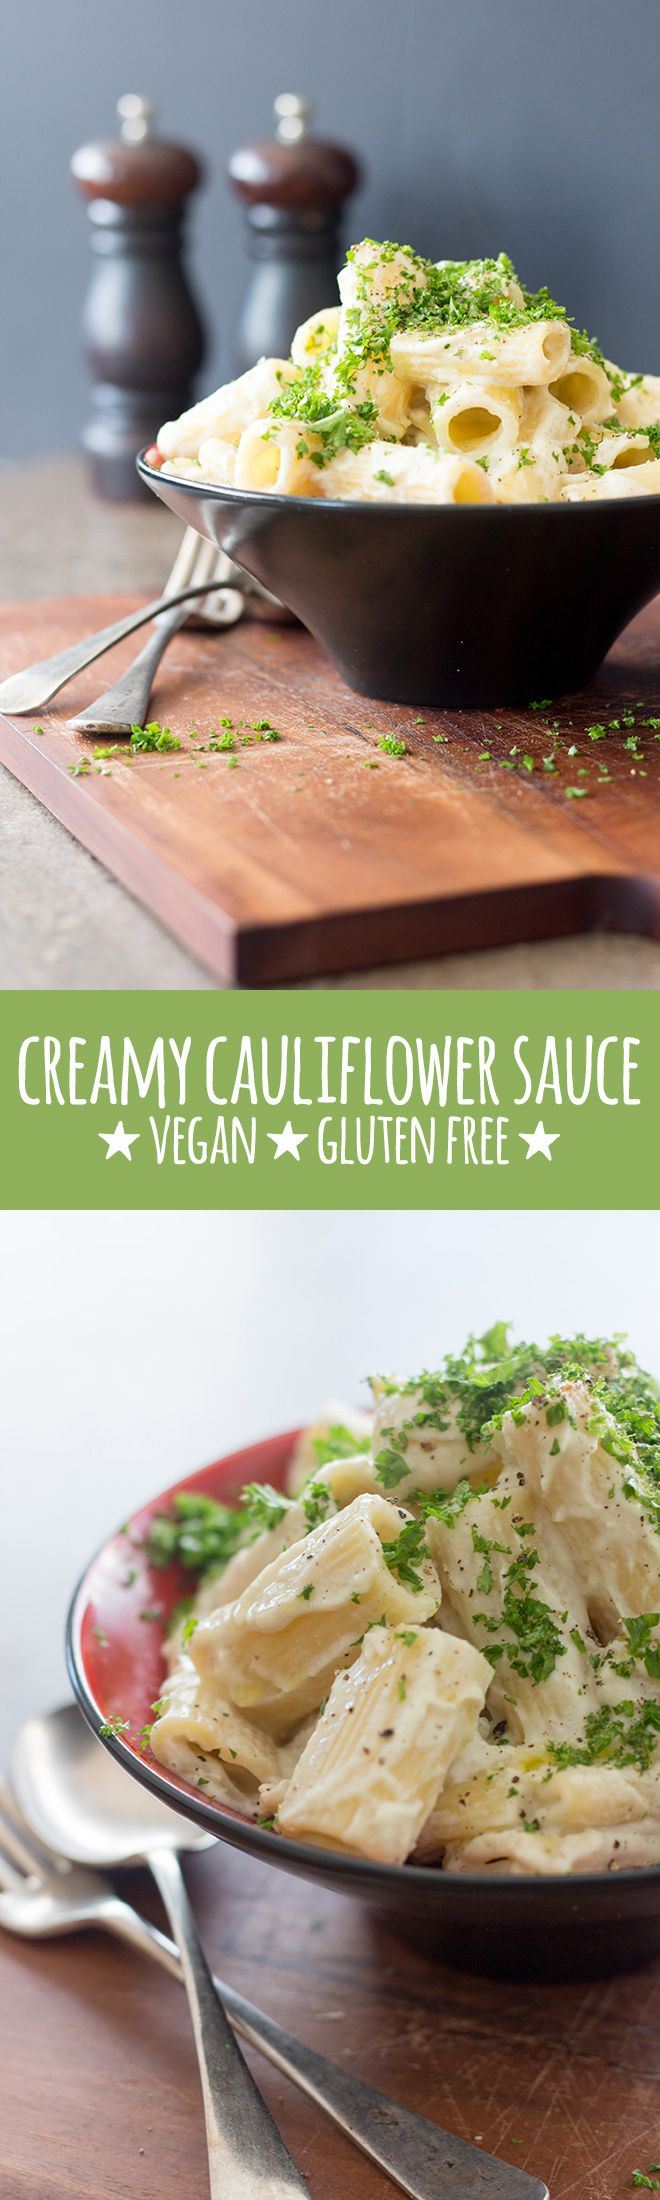 Creamy cauliflower sauce made with cauliflower, cashews and a few simple flavourings is delicious tossed with your favourite pasta. Vegan and gluten free.  via @quitegoodfood